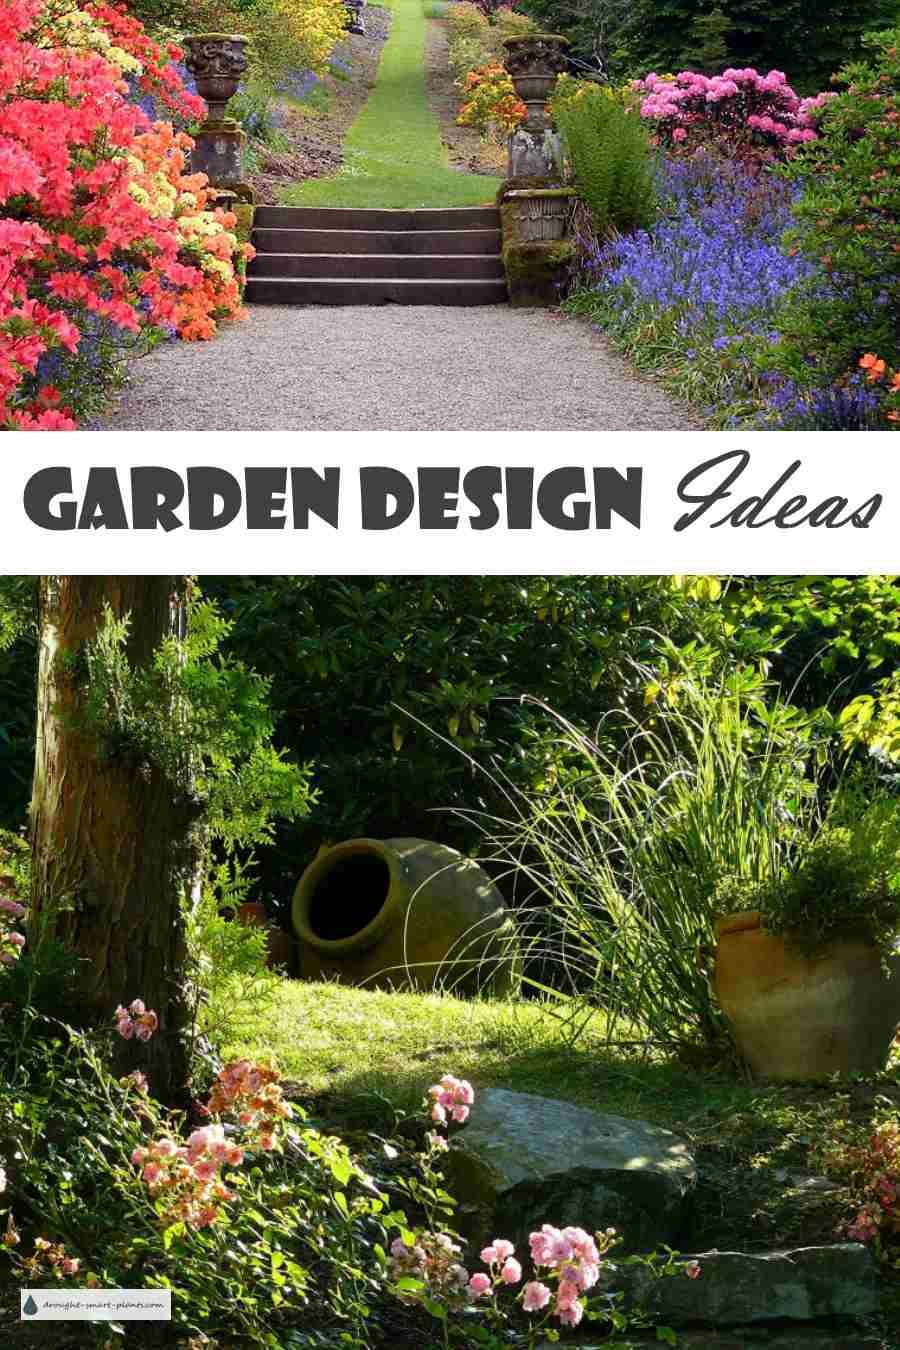 Garden Design Ideas For Xeriscaping And Low Maintenance Landscaping Garden Design Garden Design Layout Low Maintenance Garden